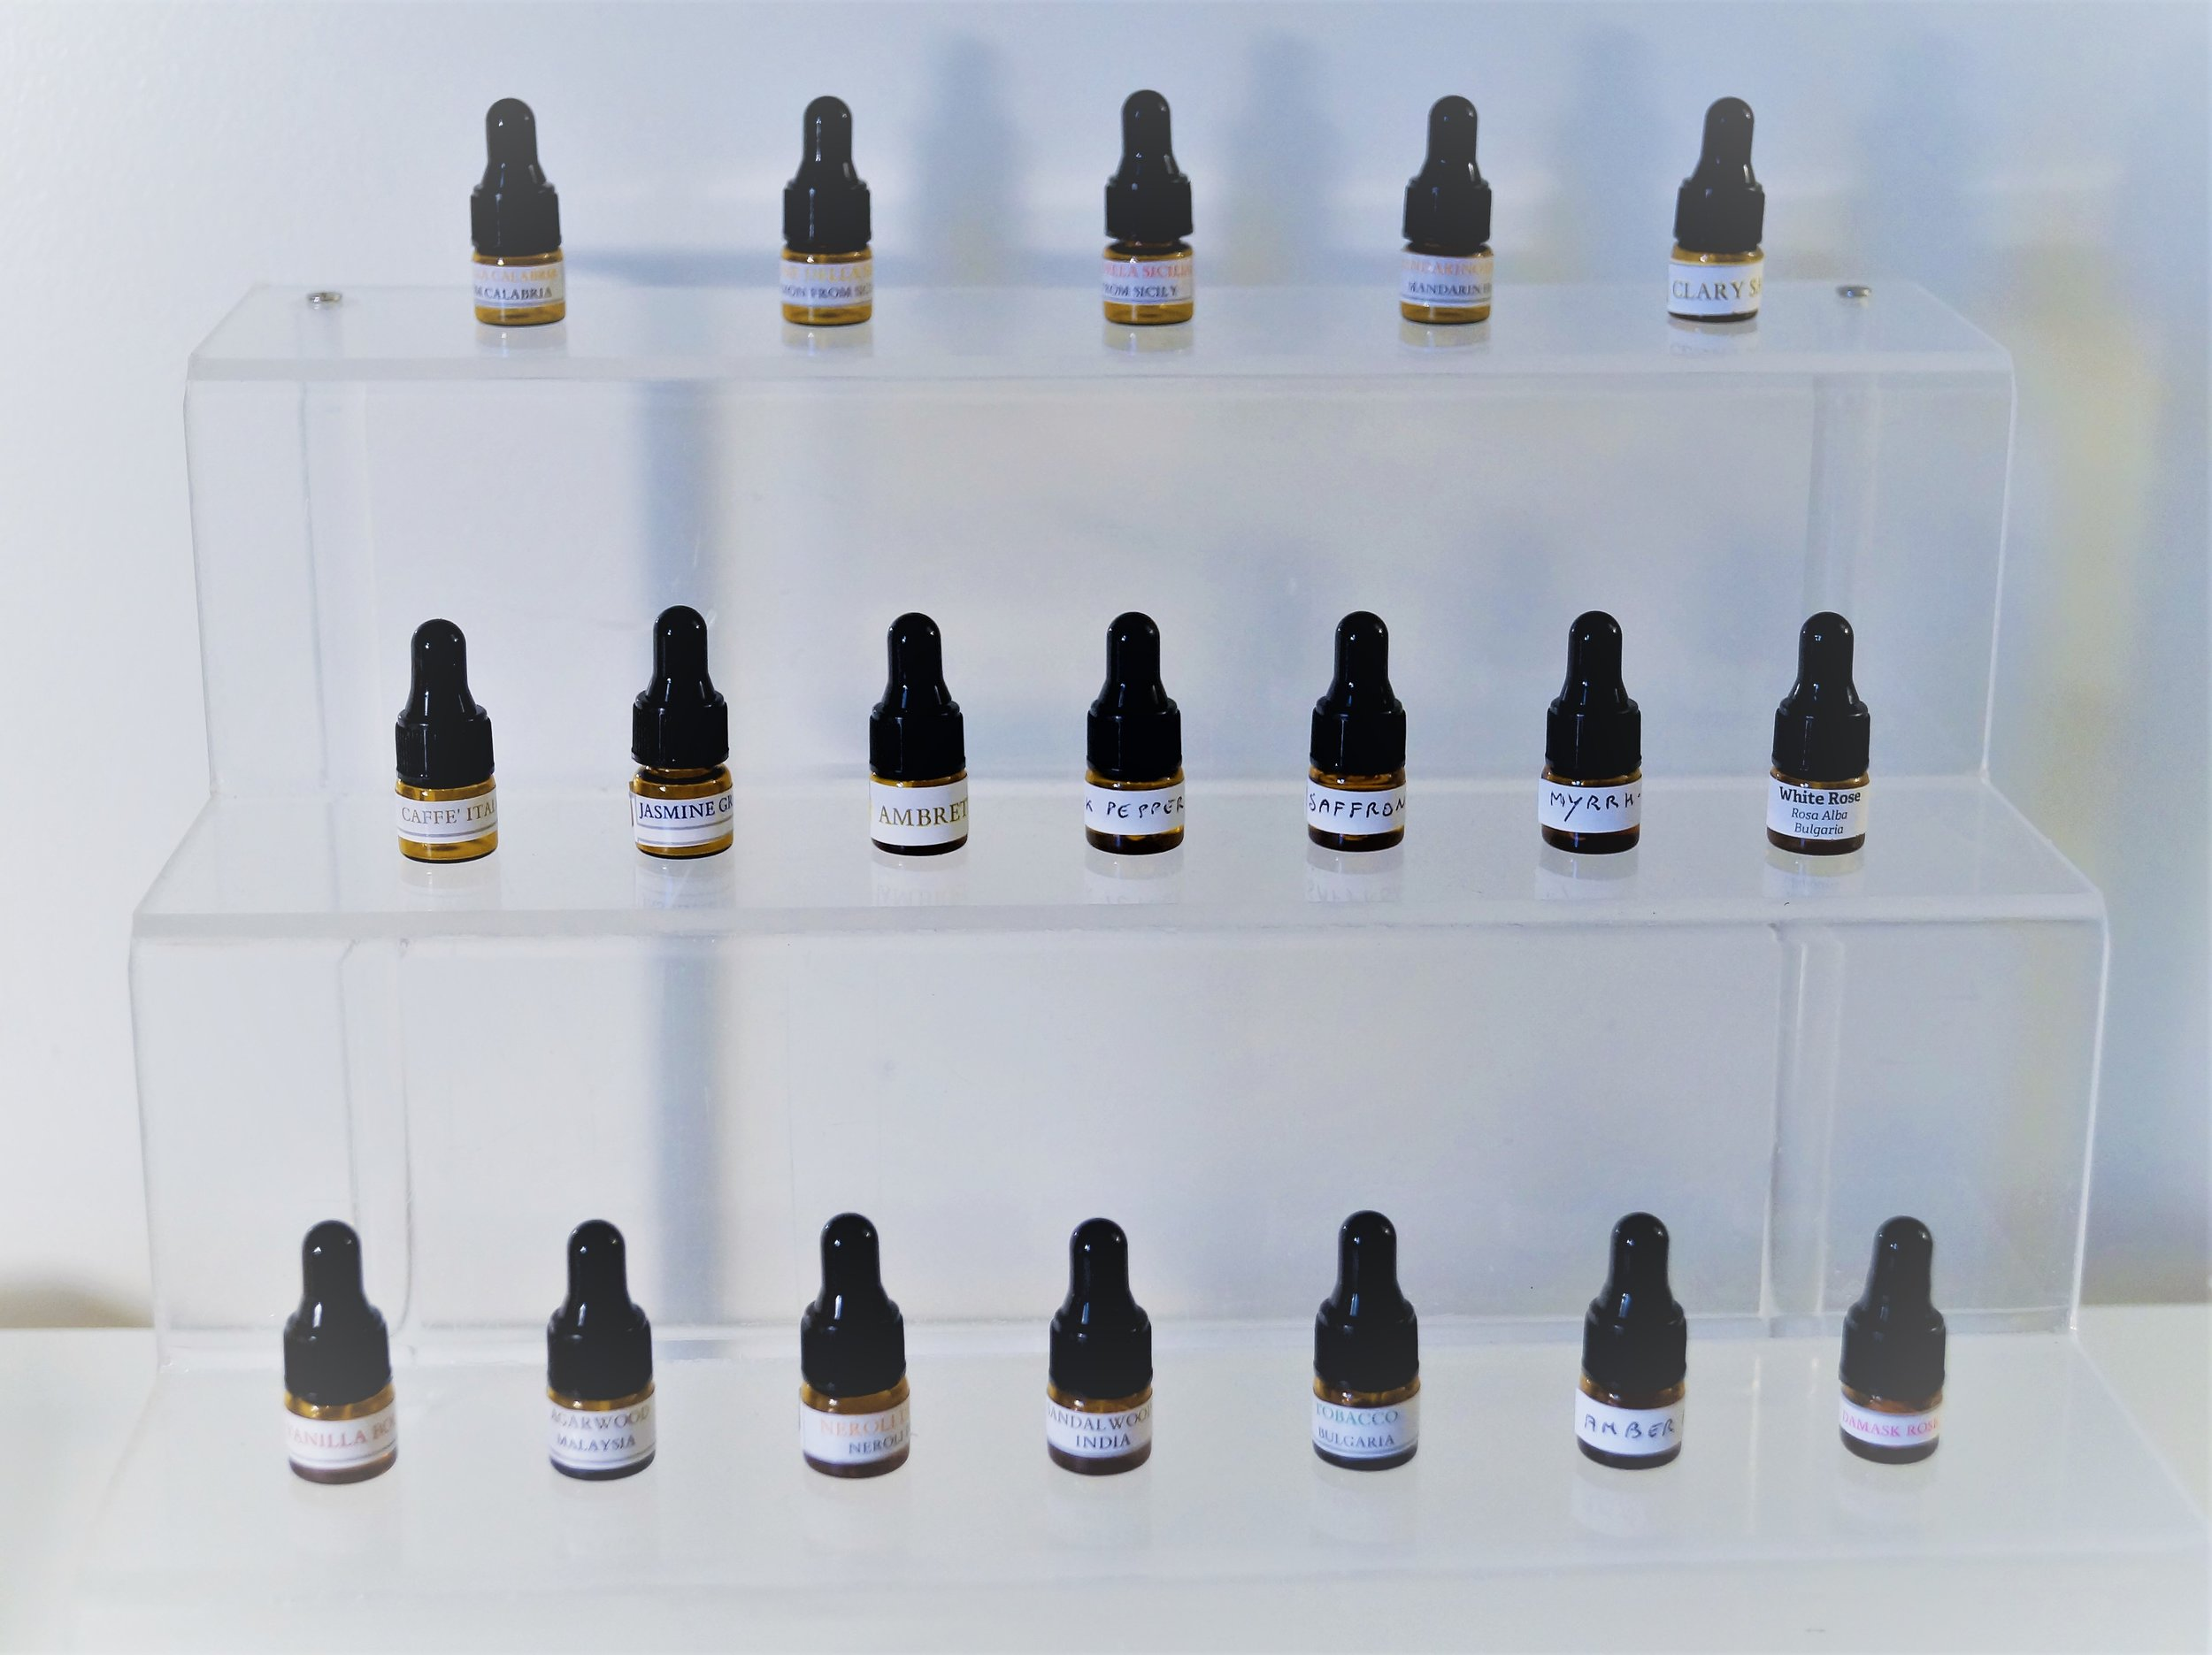 SELECTION OF ESSENTIAL OILS, ABSOLUTES AND RESINS. - The oils will be chosen among the olfactory group list (see below), depending on the availability .